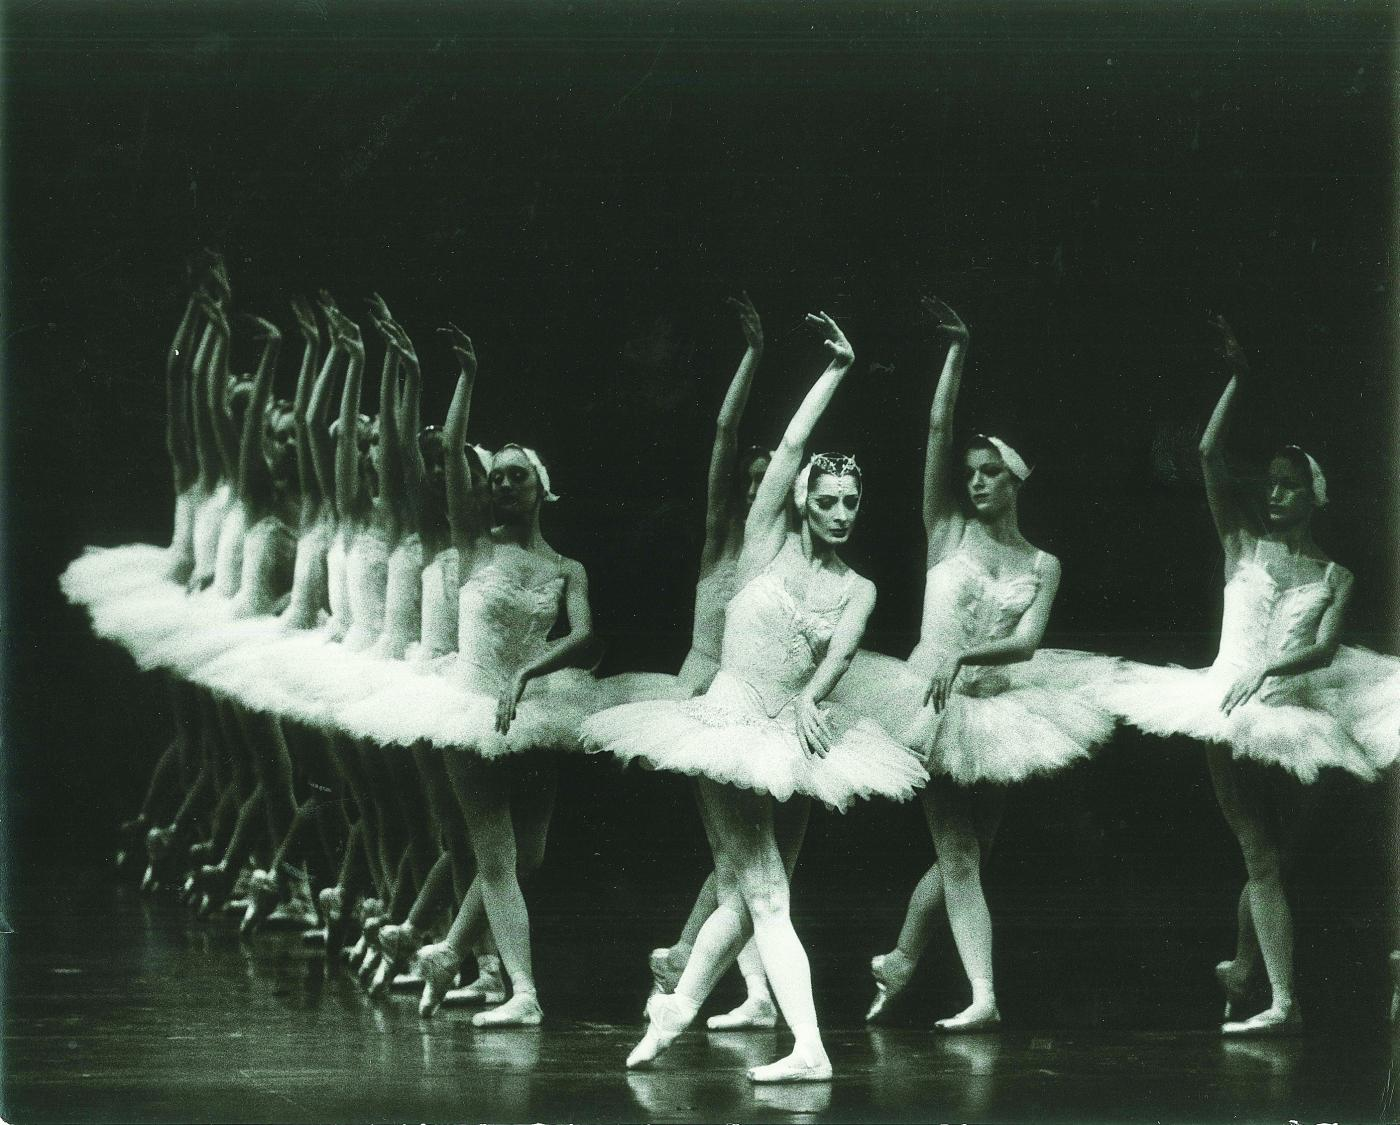 Rare birds: Photos from Swan Lake then and now, with Cynthia Gregory in an American Ballet Theatre production in the late 1960's (black and white).